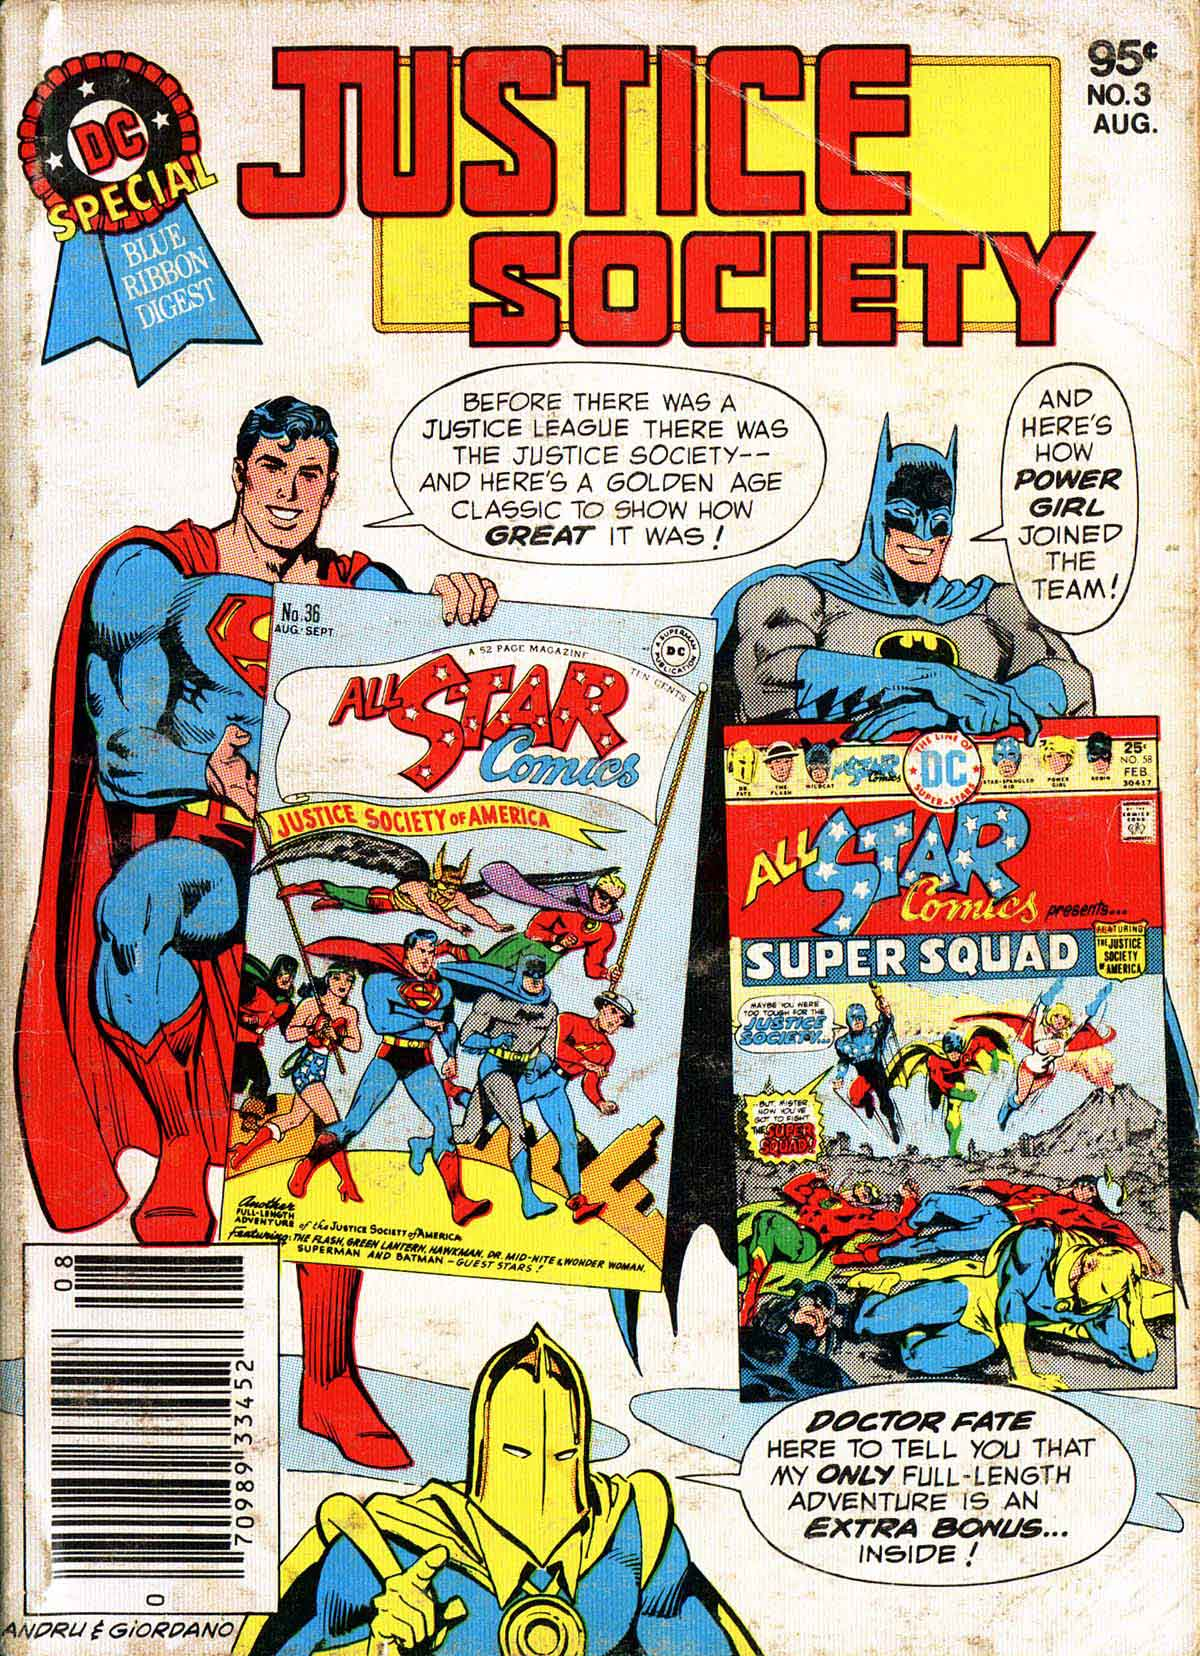 DC SPECIAL BLUE RIBBON DIGEST #3 - JUSTICE SOCIETY cover by Ross Andru and Dick Giordano